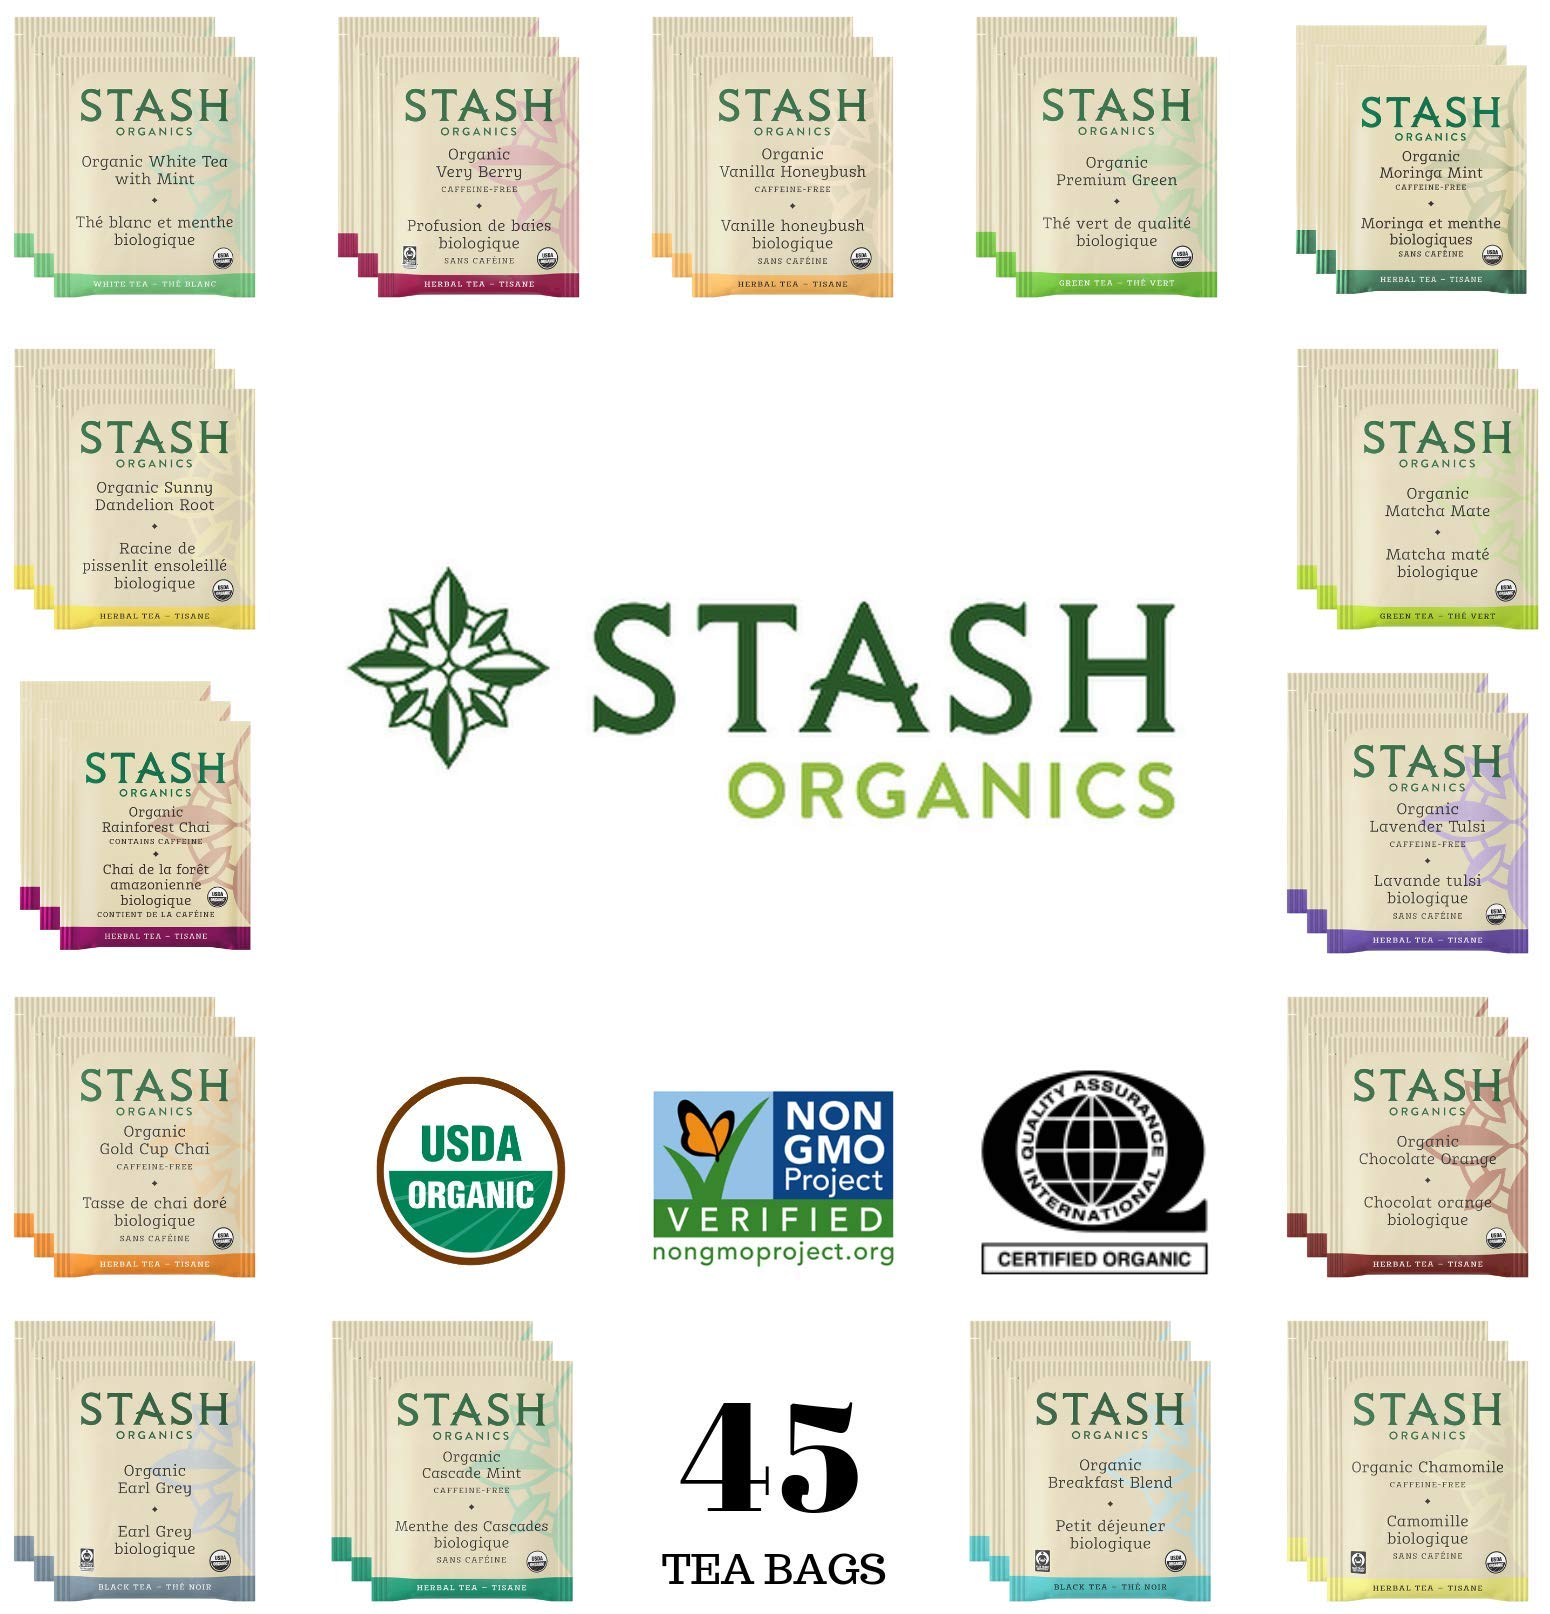 Stash Organic Tea Sampler - Assortment Variety Pack Gift Set - Black, White, Green & Herbal Tea Bags - 45 Count, 15 Flavors - /w Eco-Friendly Cotton Bag